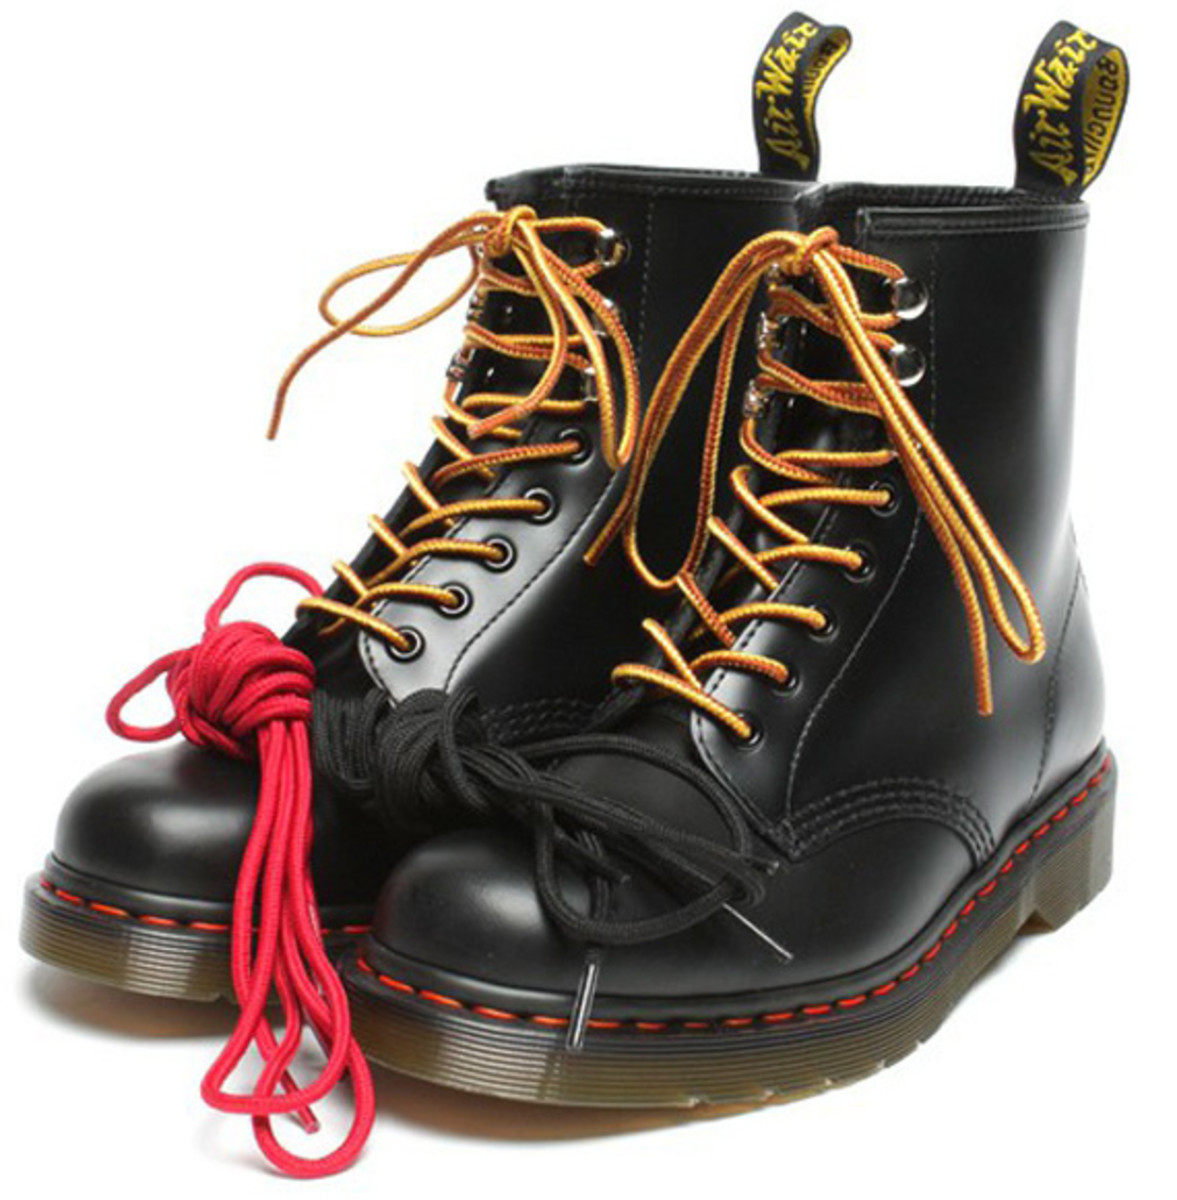 atmos-dr-martens-8-eyelets-boots-01